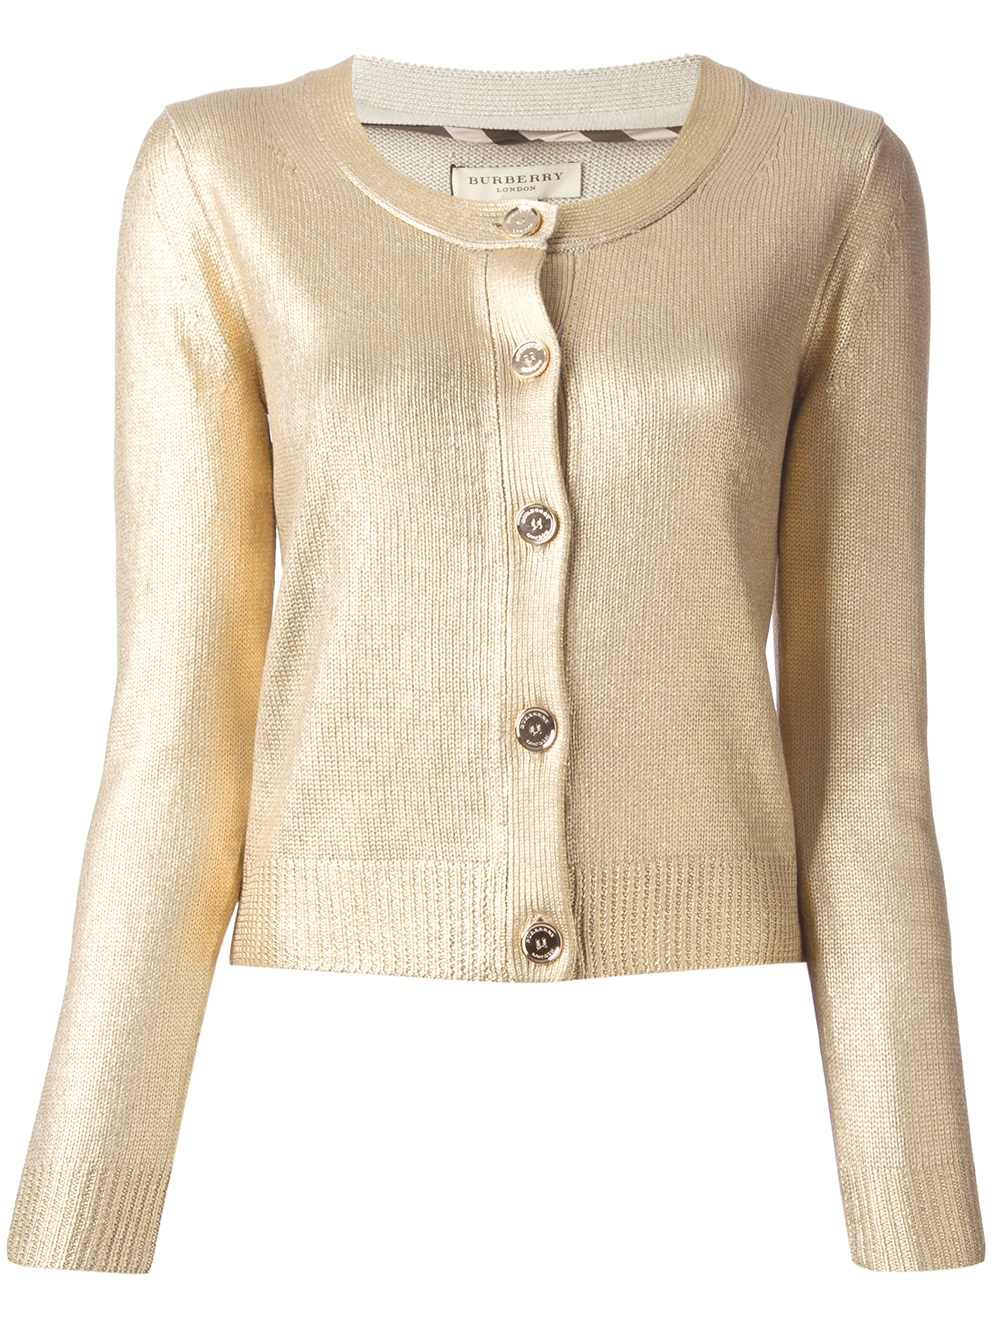 Burberry Round Neck Cardigan in Metallic | Lyst